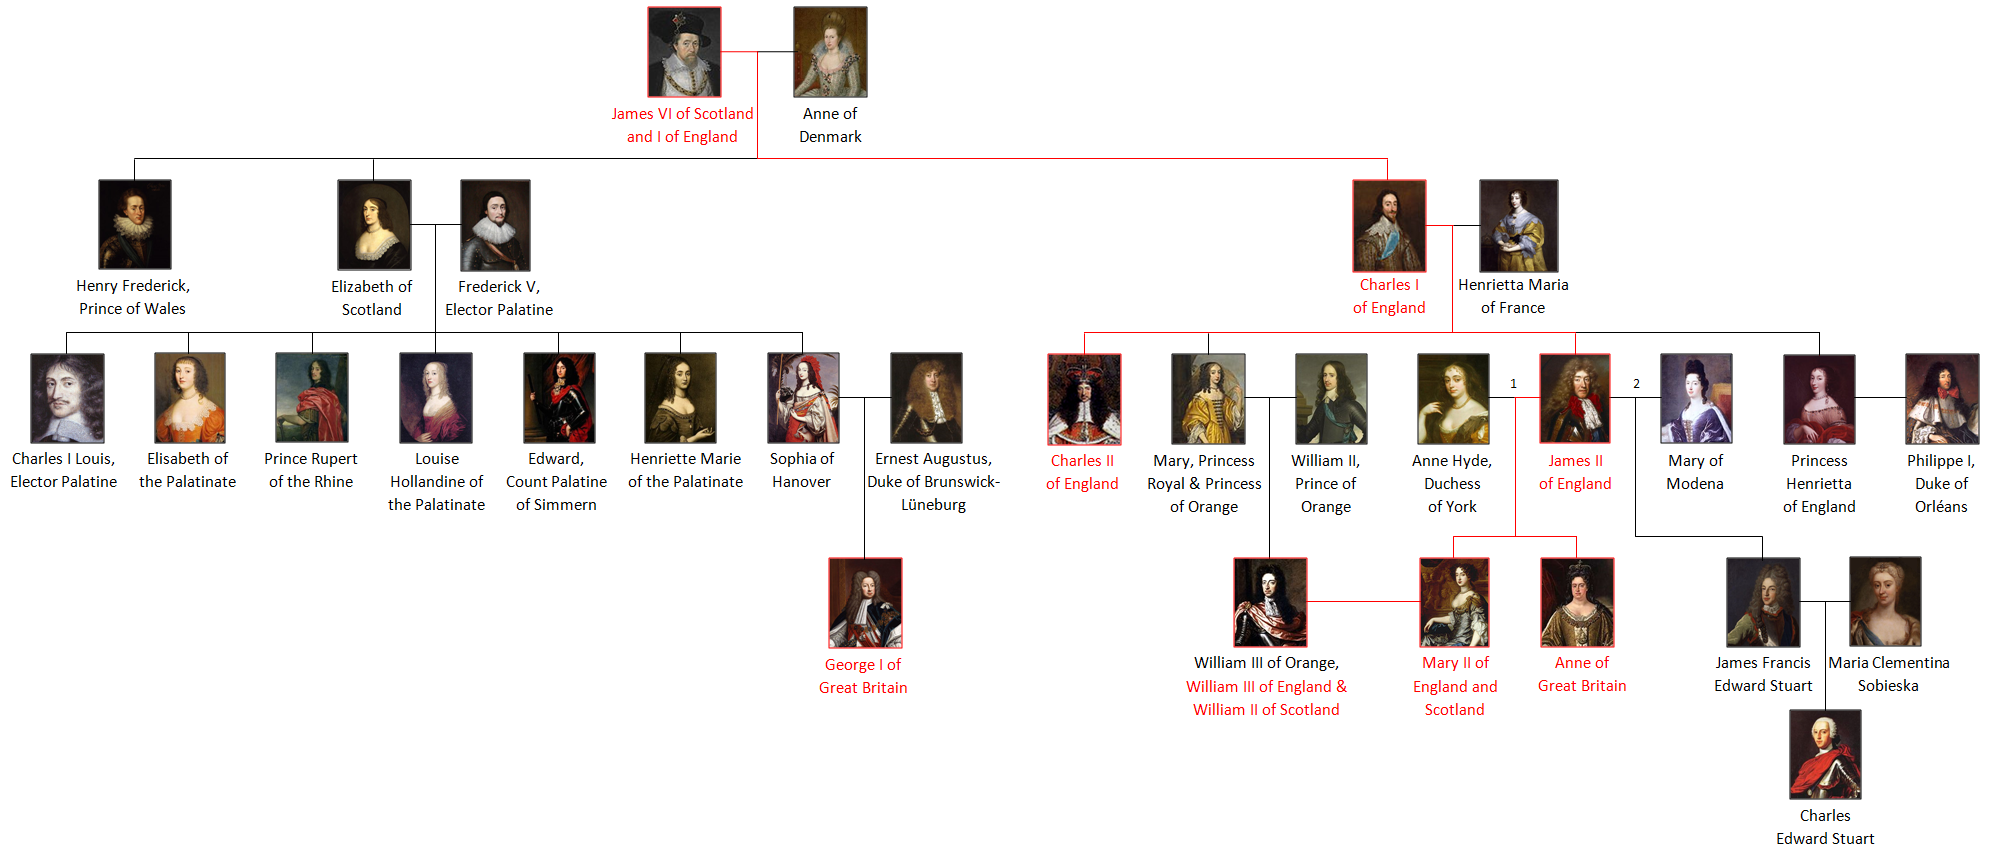 Family cây of the principle members of the house of Stuart.